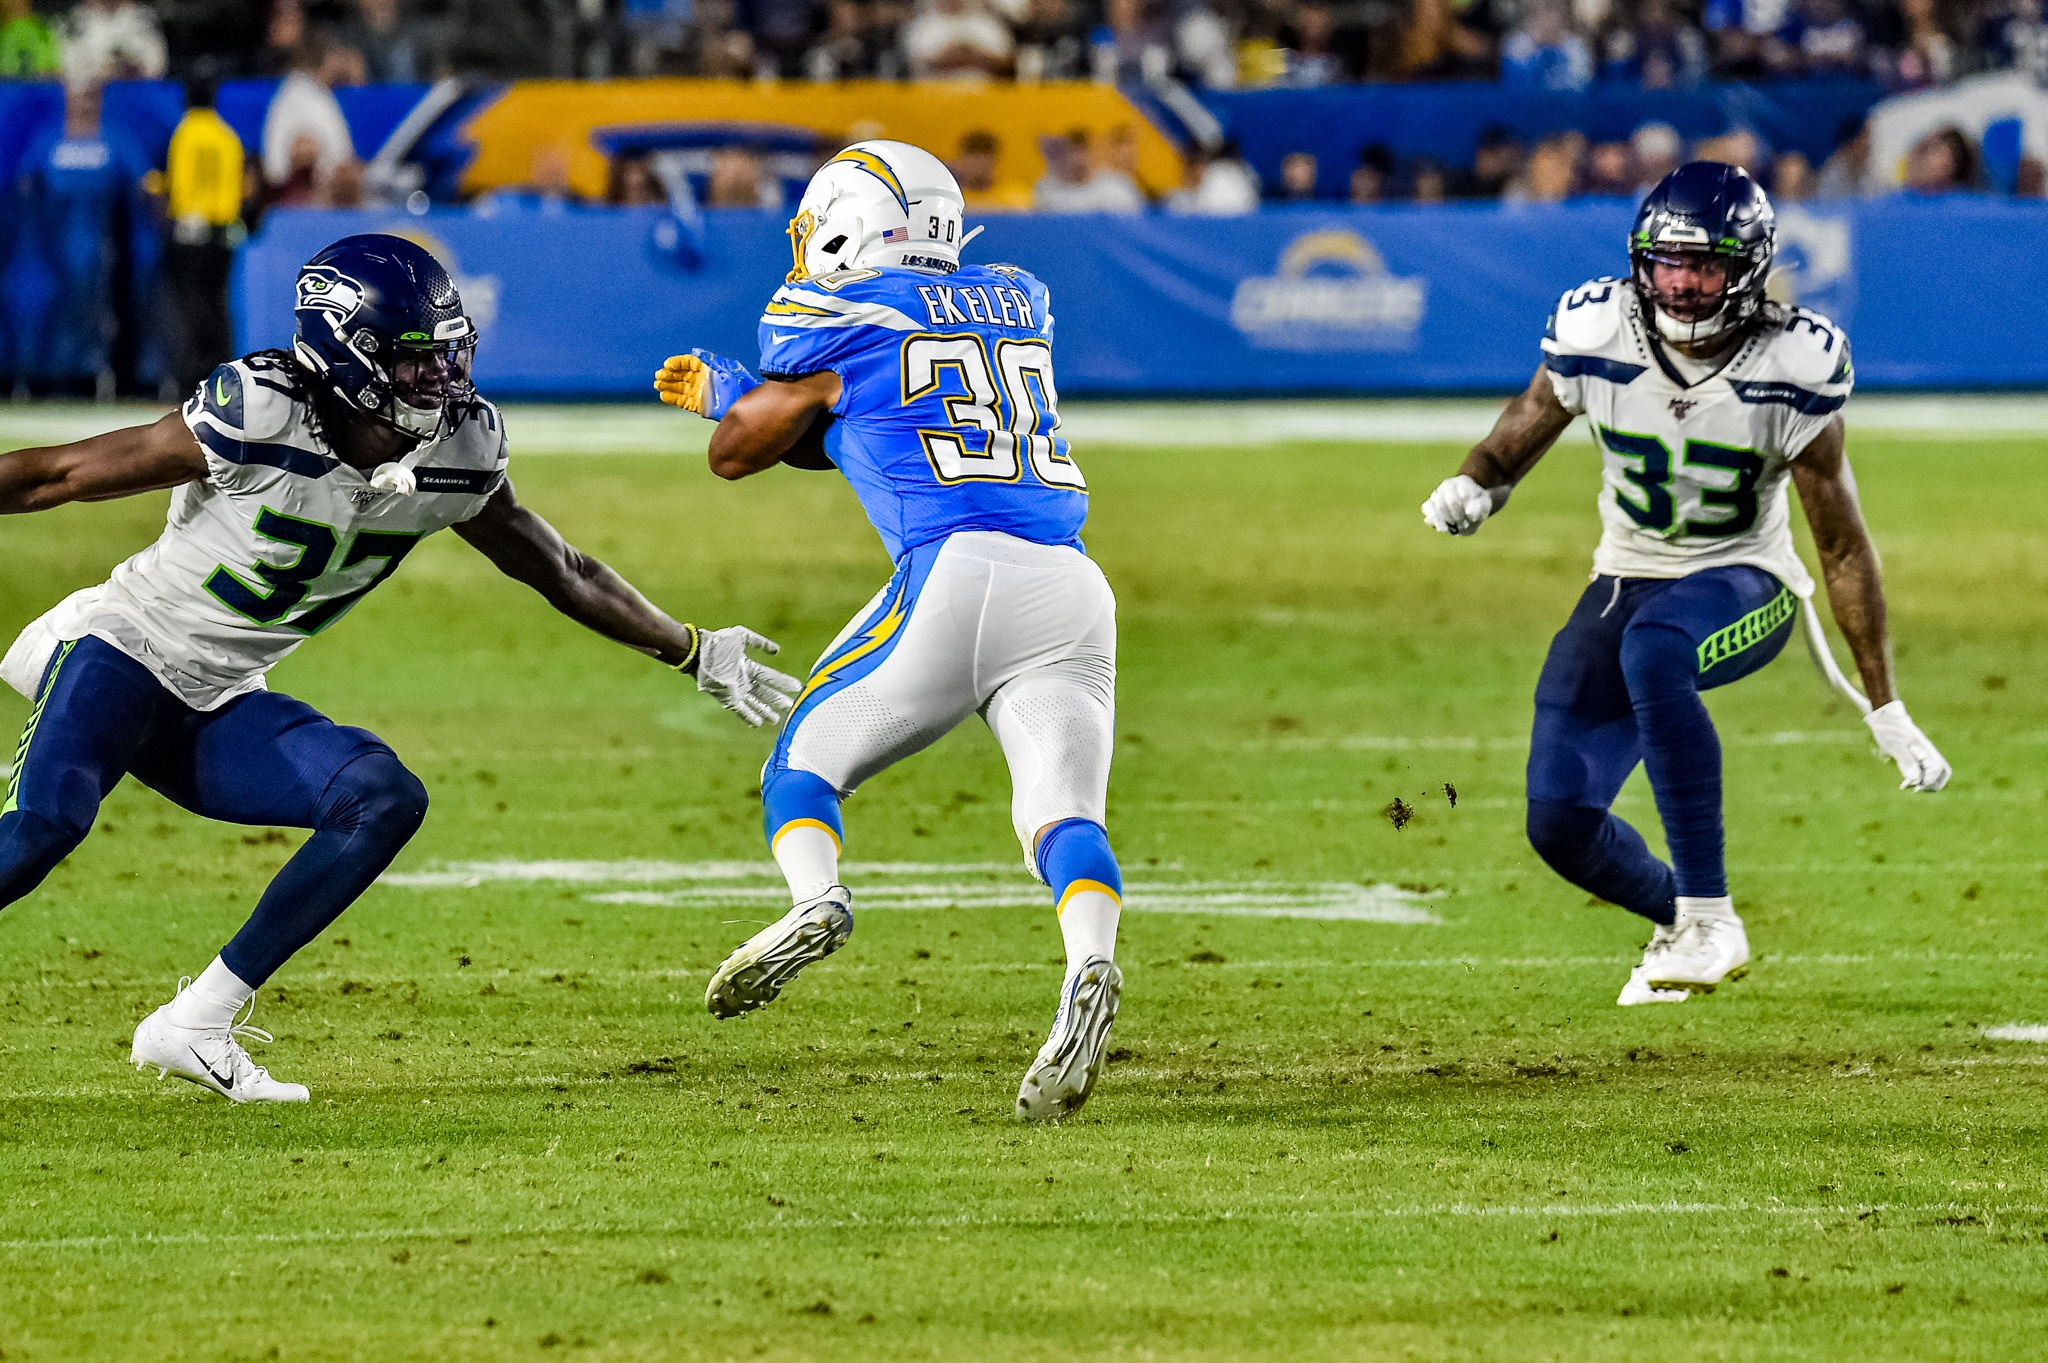 © Mark Hammond/News4usonline - Aug. 24, 2019 - Seahawks vs. Chargers - Chargers Austin Ekeler (30) looking for a hole to run against the Seattle defense.